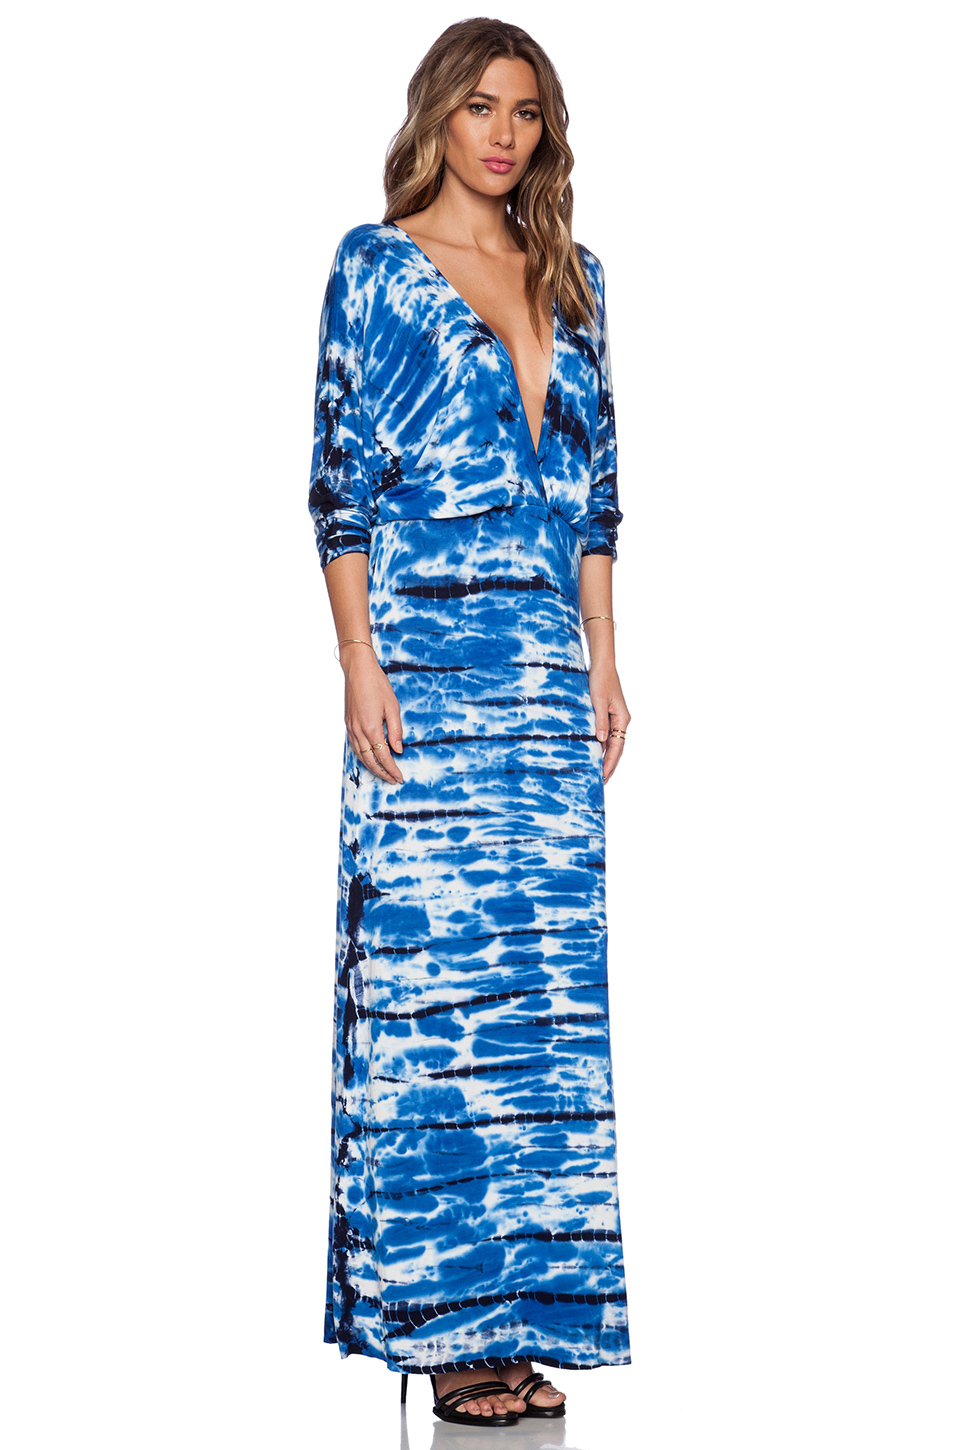 Out-do the dress code and make every occasion a style statement with the latest designs in dresses for women. Set the standard for style this season in a sophisticated maxi dress, or opt for effortless appeal in a floaty midi dress.